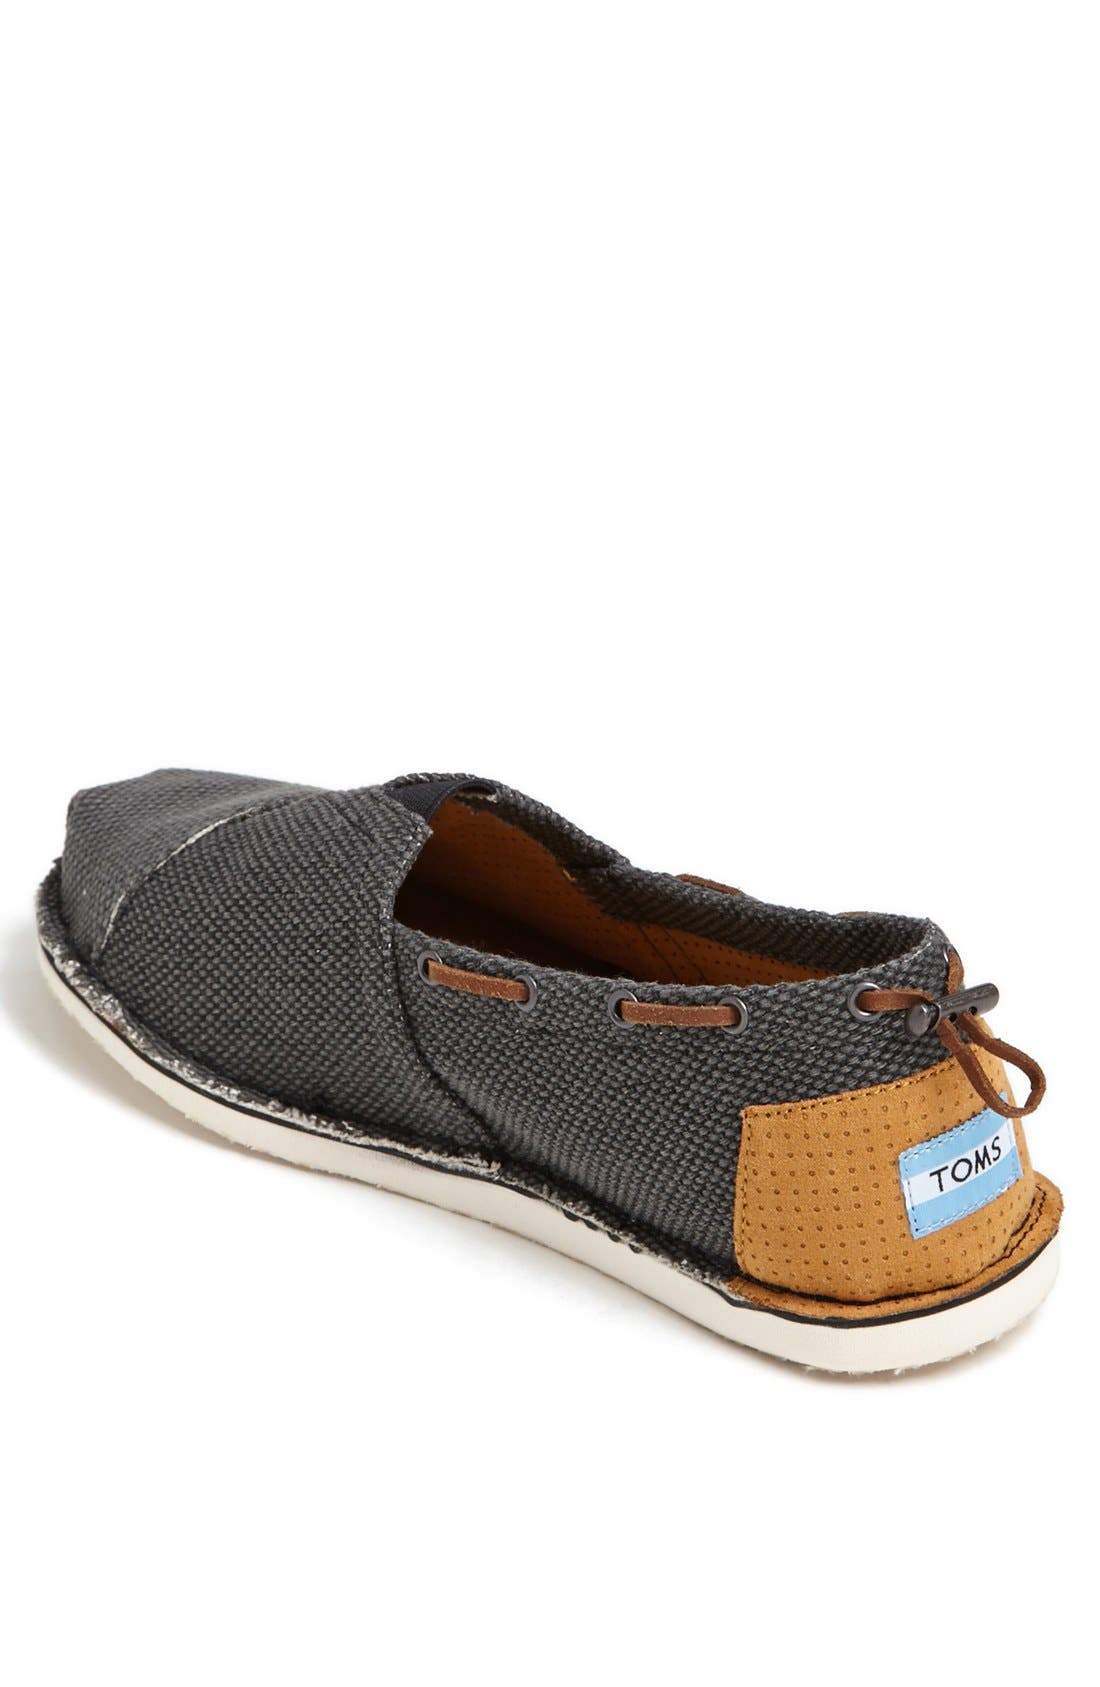 Alternate Image 2  - TOMS 'Bimini - Stitchout' Slip-On (Men)